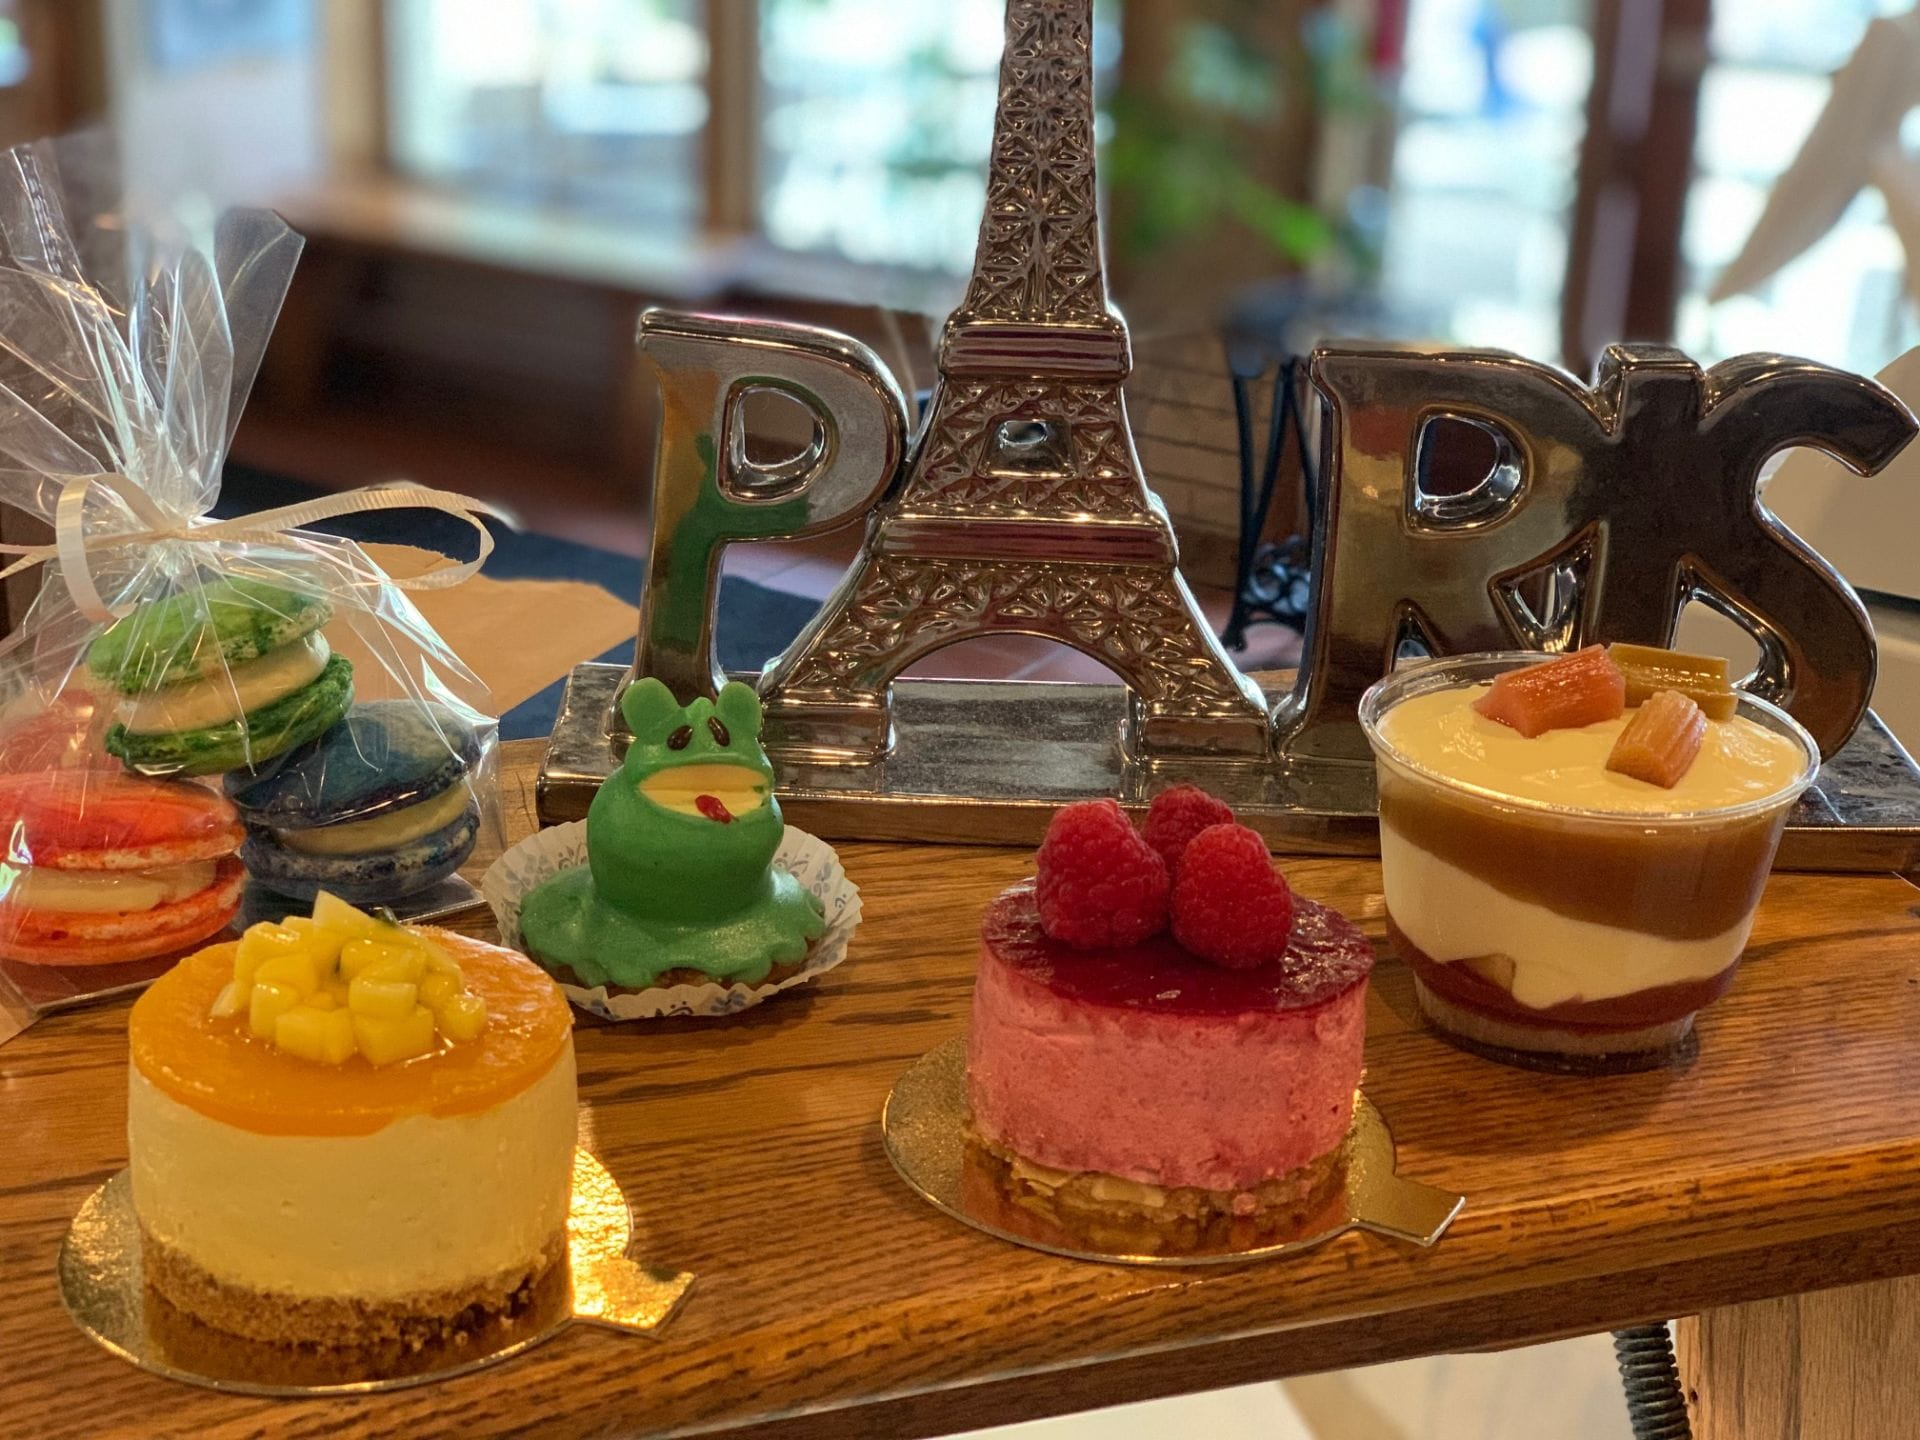 miniature eifel tower on a table with pastries